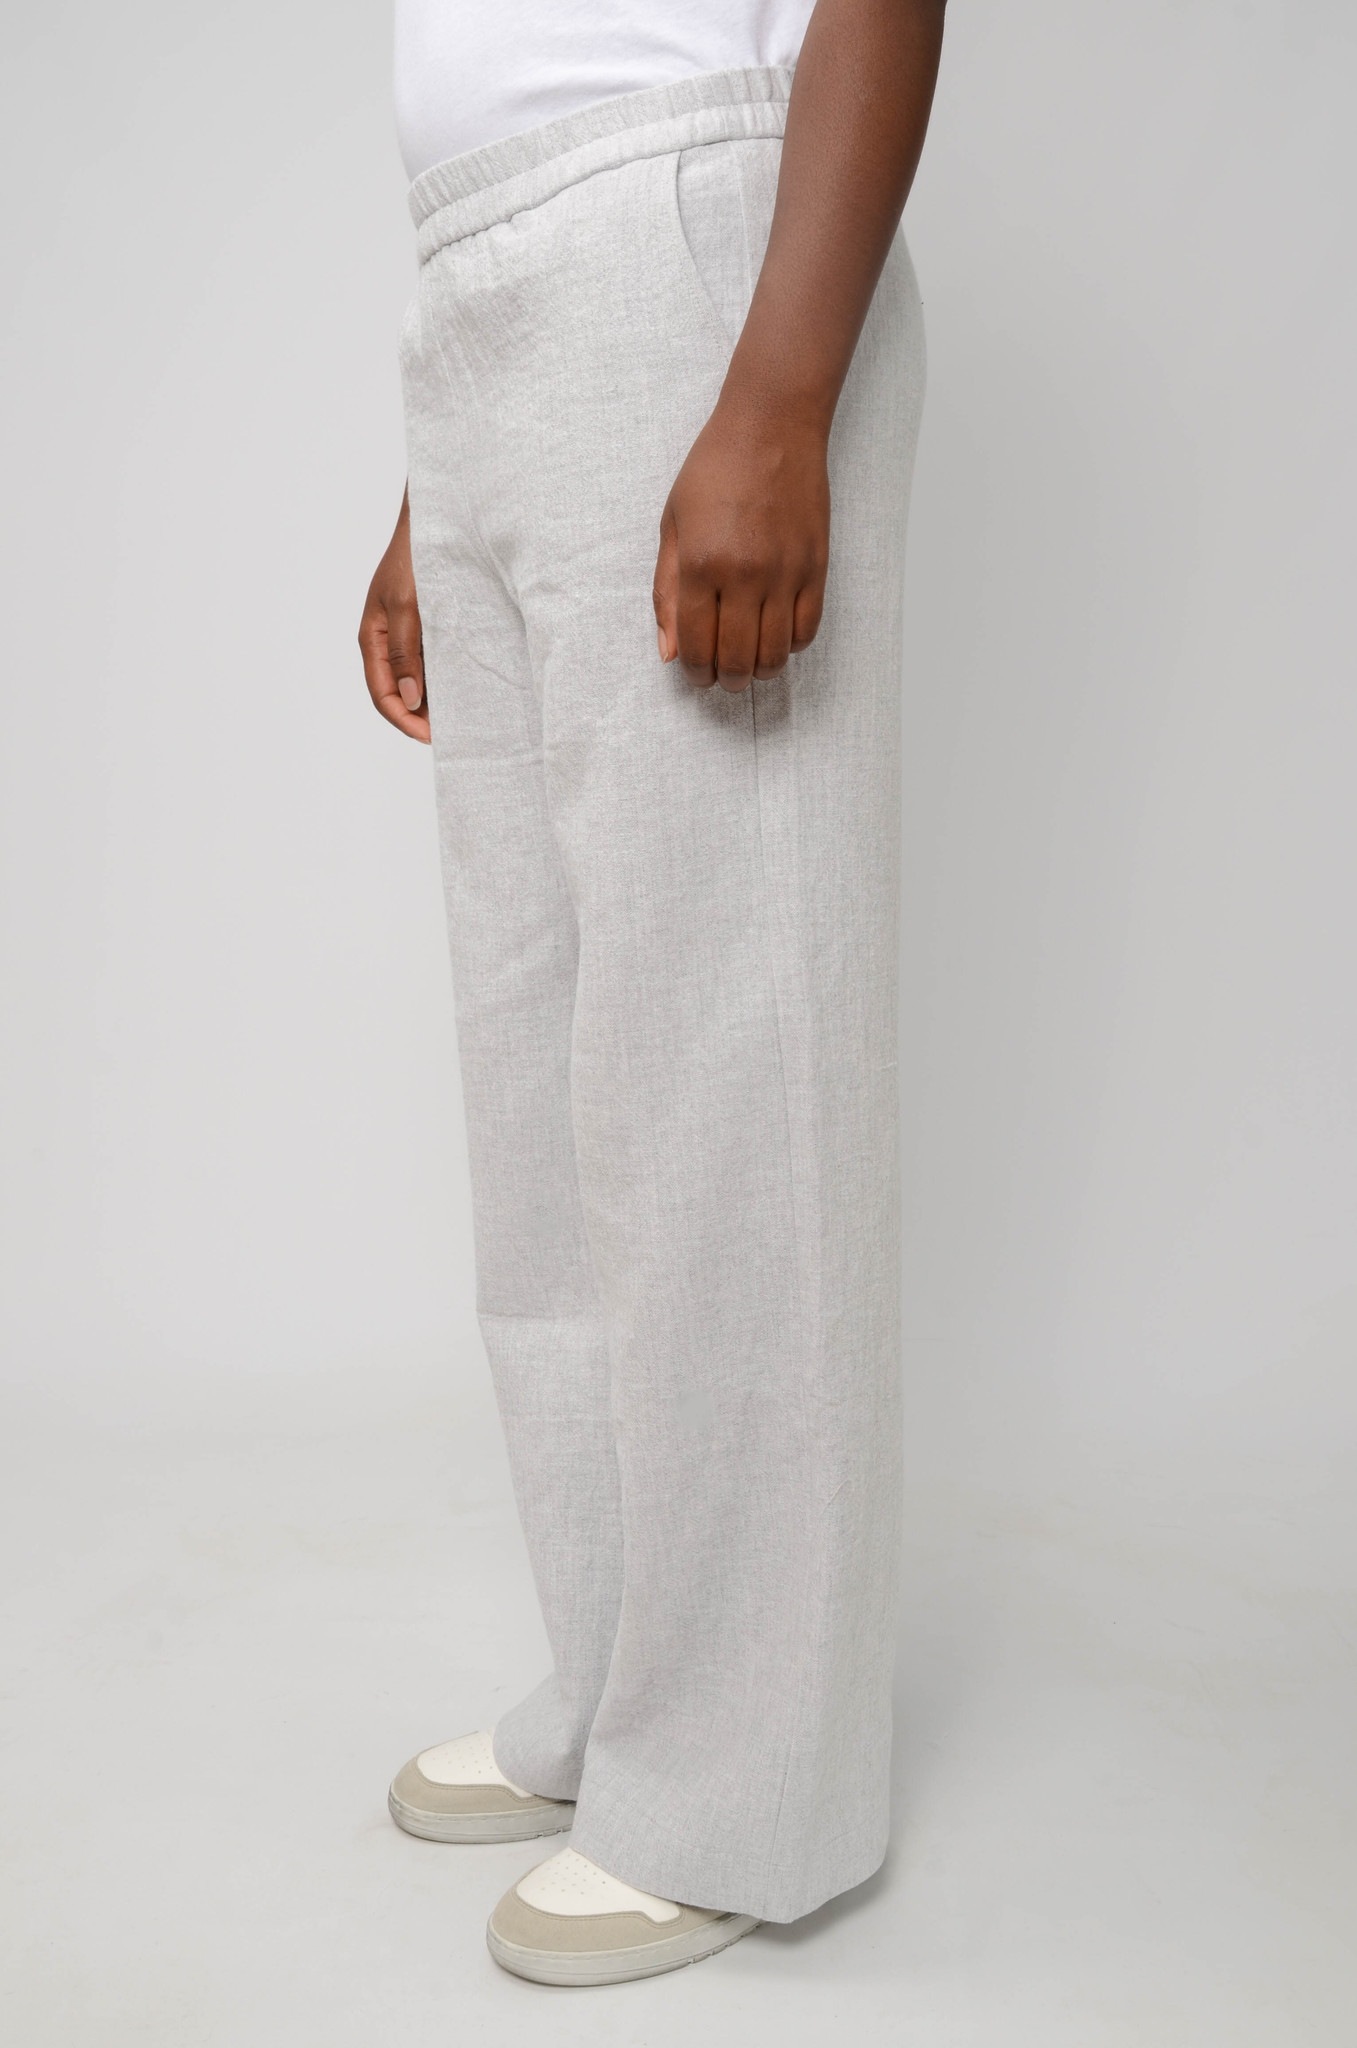 JACKIE TROUSERS IN LIGHT GREY-3